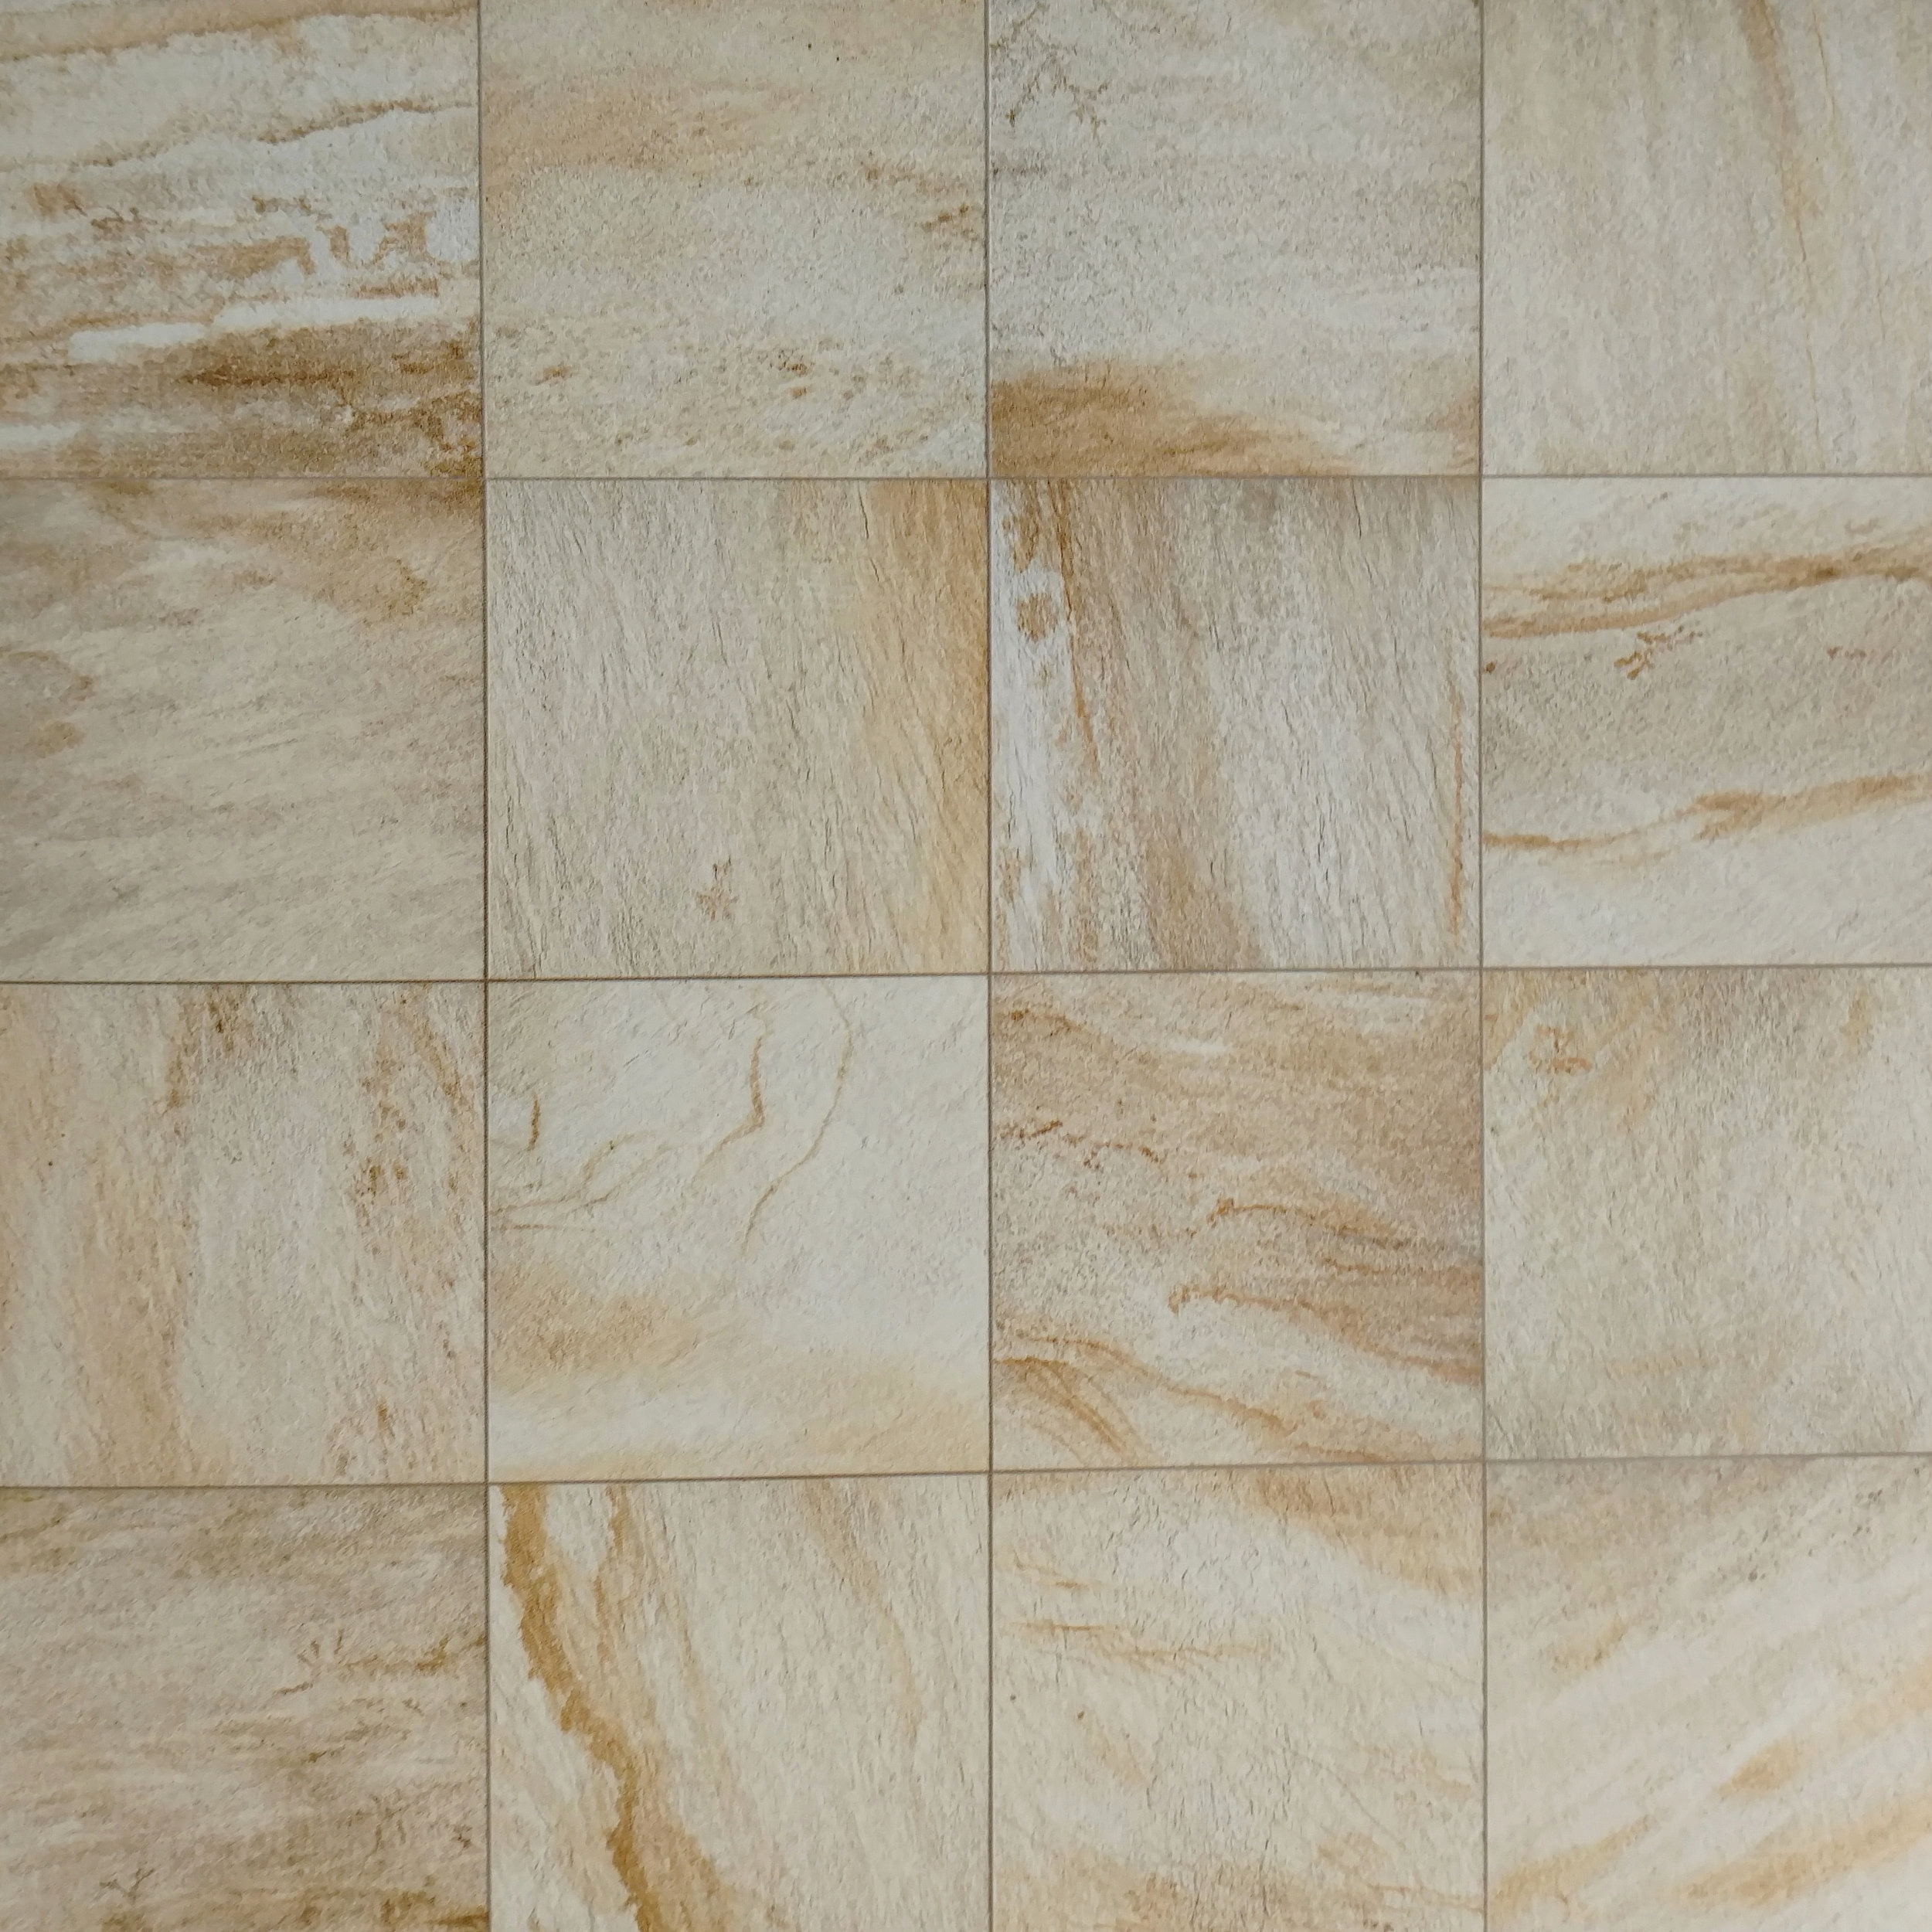 """QuartziteDorada 12"""" x 12"""" Porcelain (16 pieces shown for variation) Also available in : 6"""" x 6"""", 12"""" x 24"""", 18""""x 18"""""""